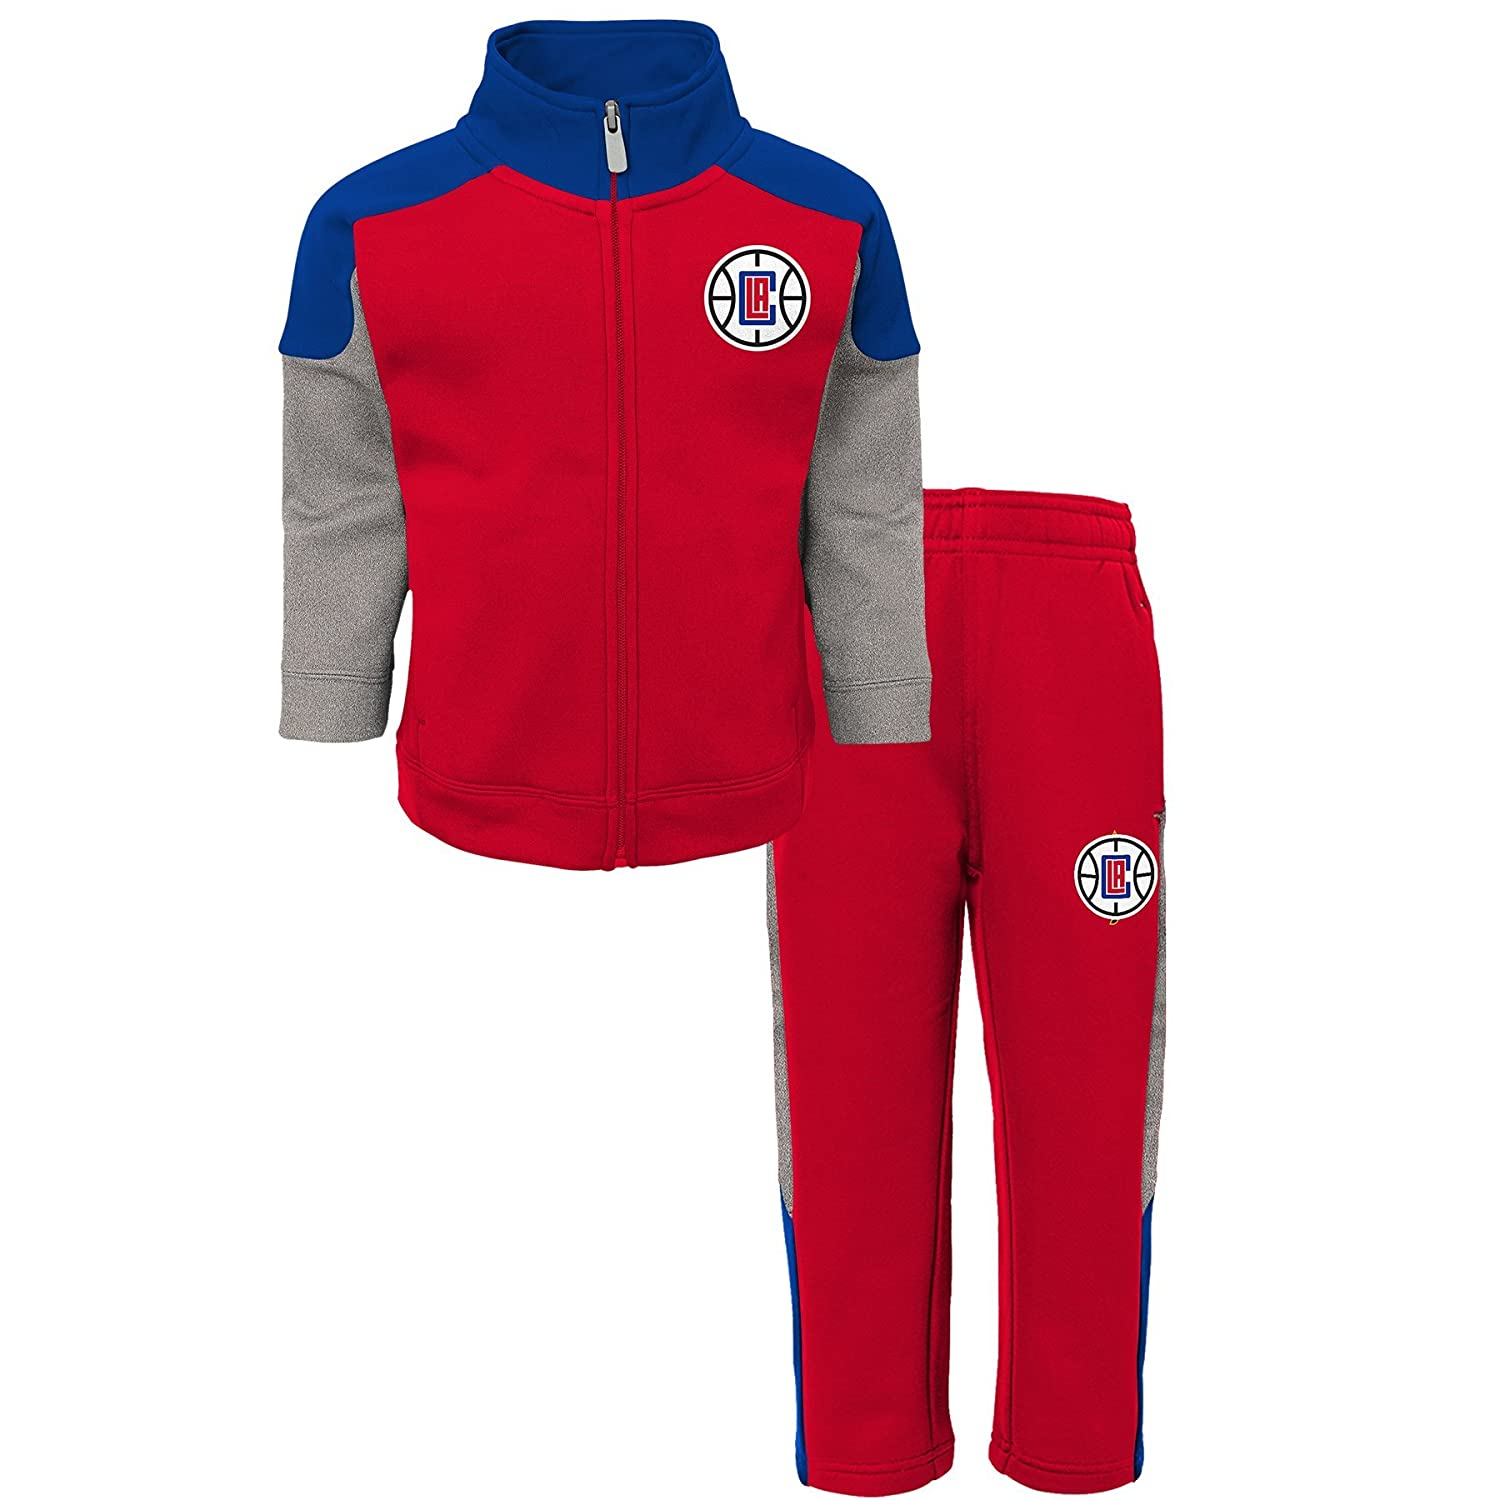 NBA Toddler One and One Pant Set Los Angeles Clippers-Red-3T